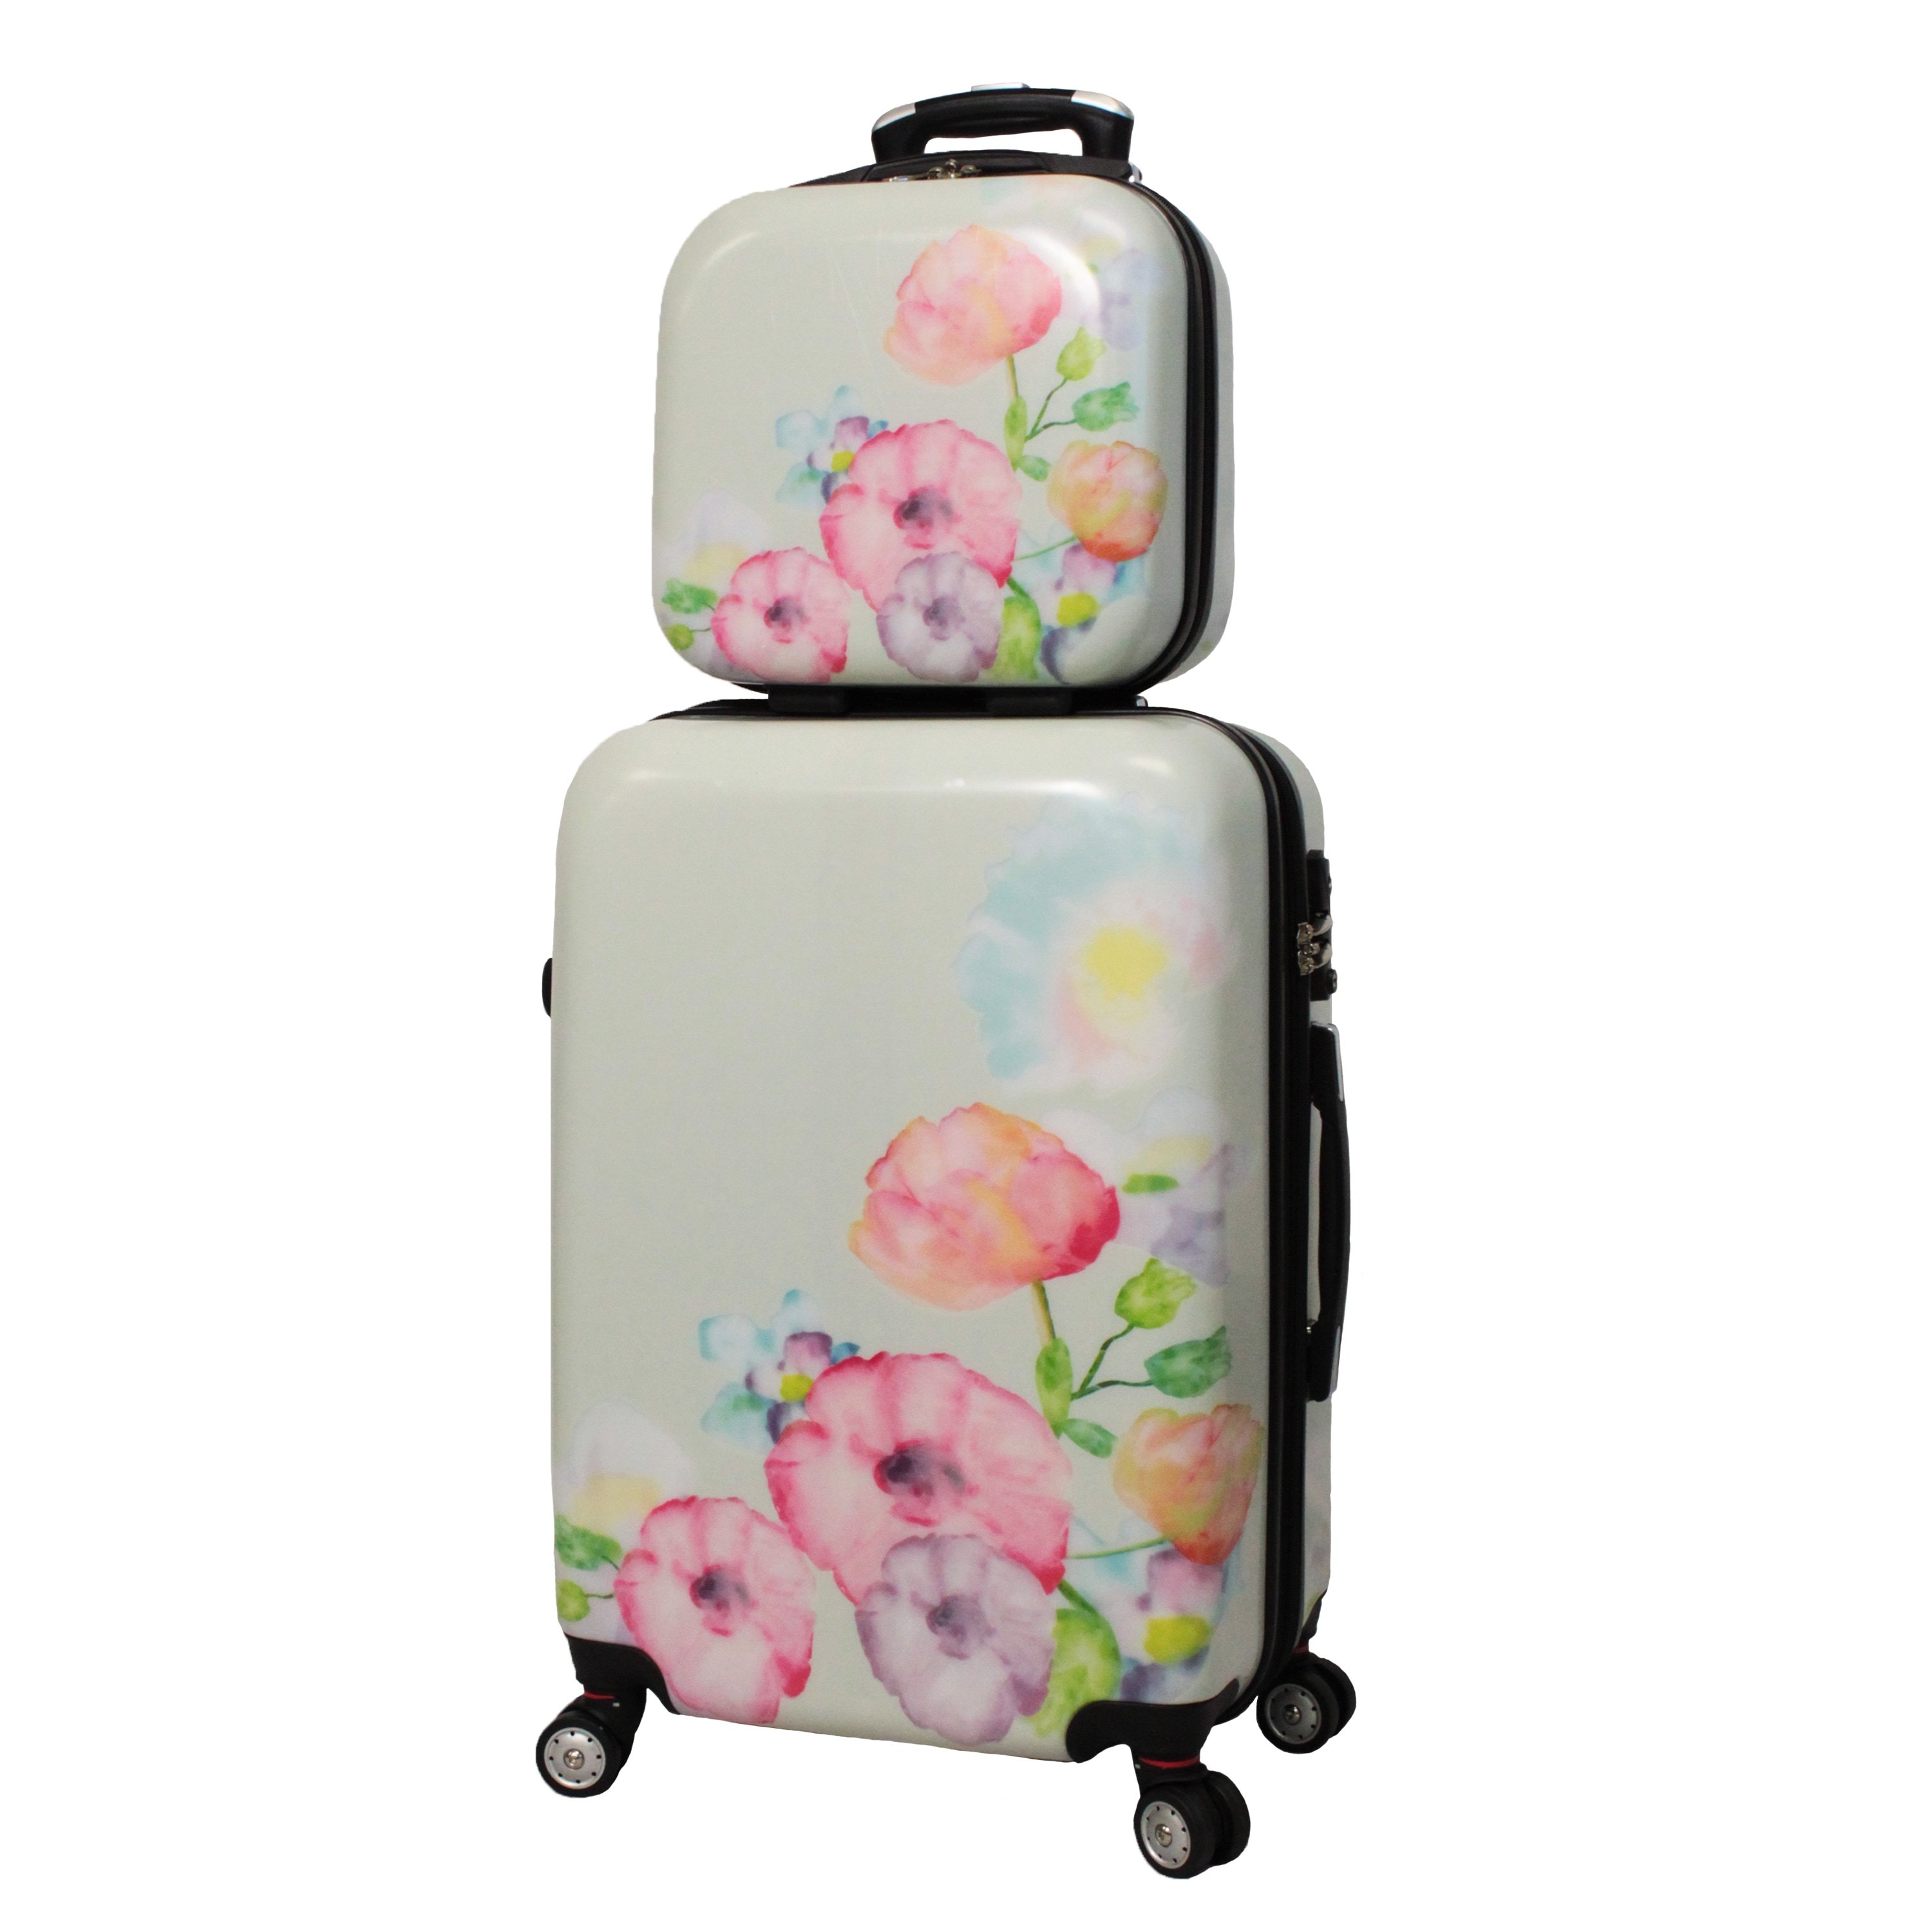 2f6d8dcd51975 Shop World Traveler Flower Bloom 4-piece Lightweight Hardside Spinner  Luggage Set - Free Shipping Today - Overstock - 10543368